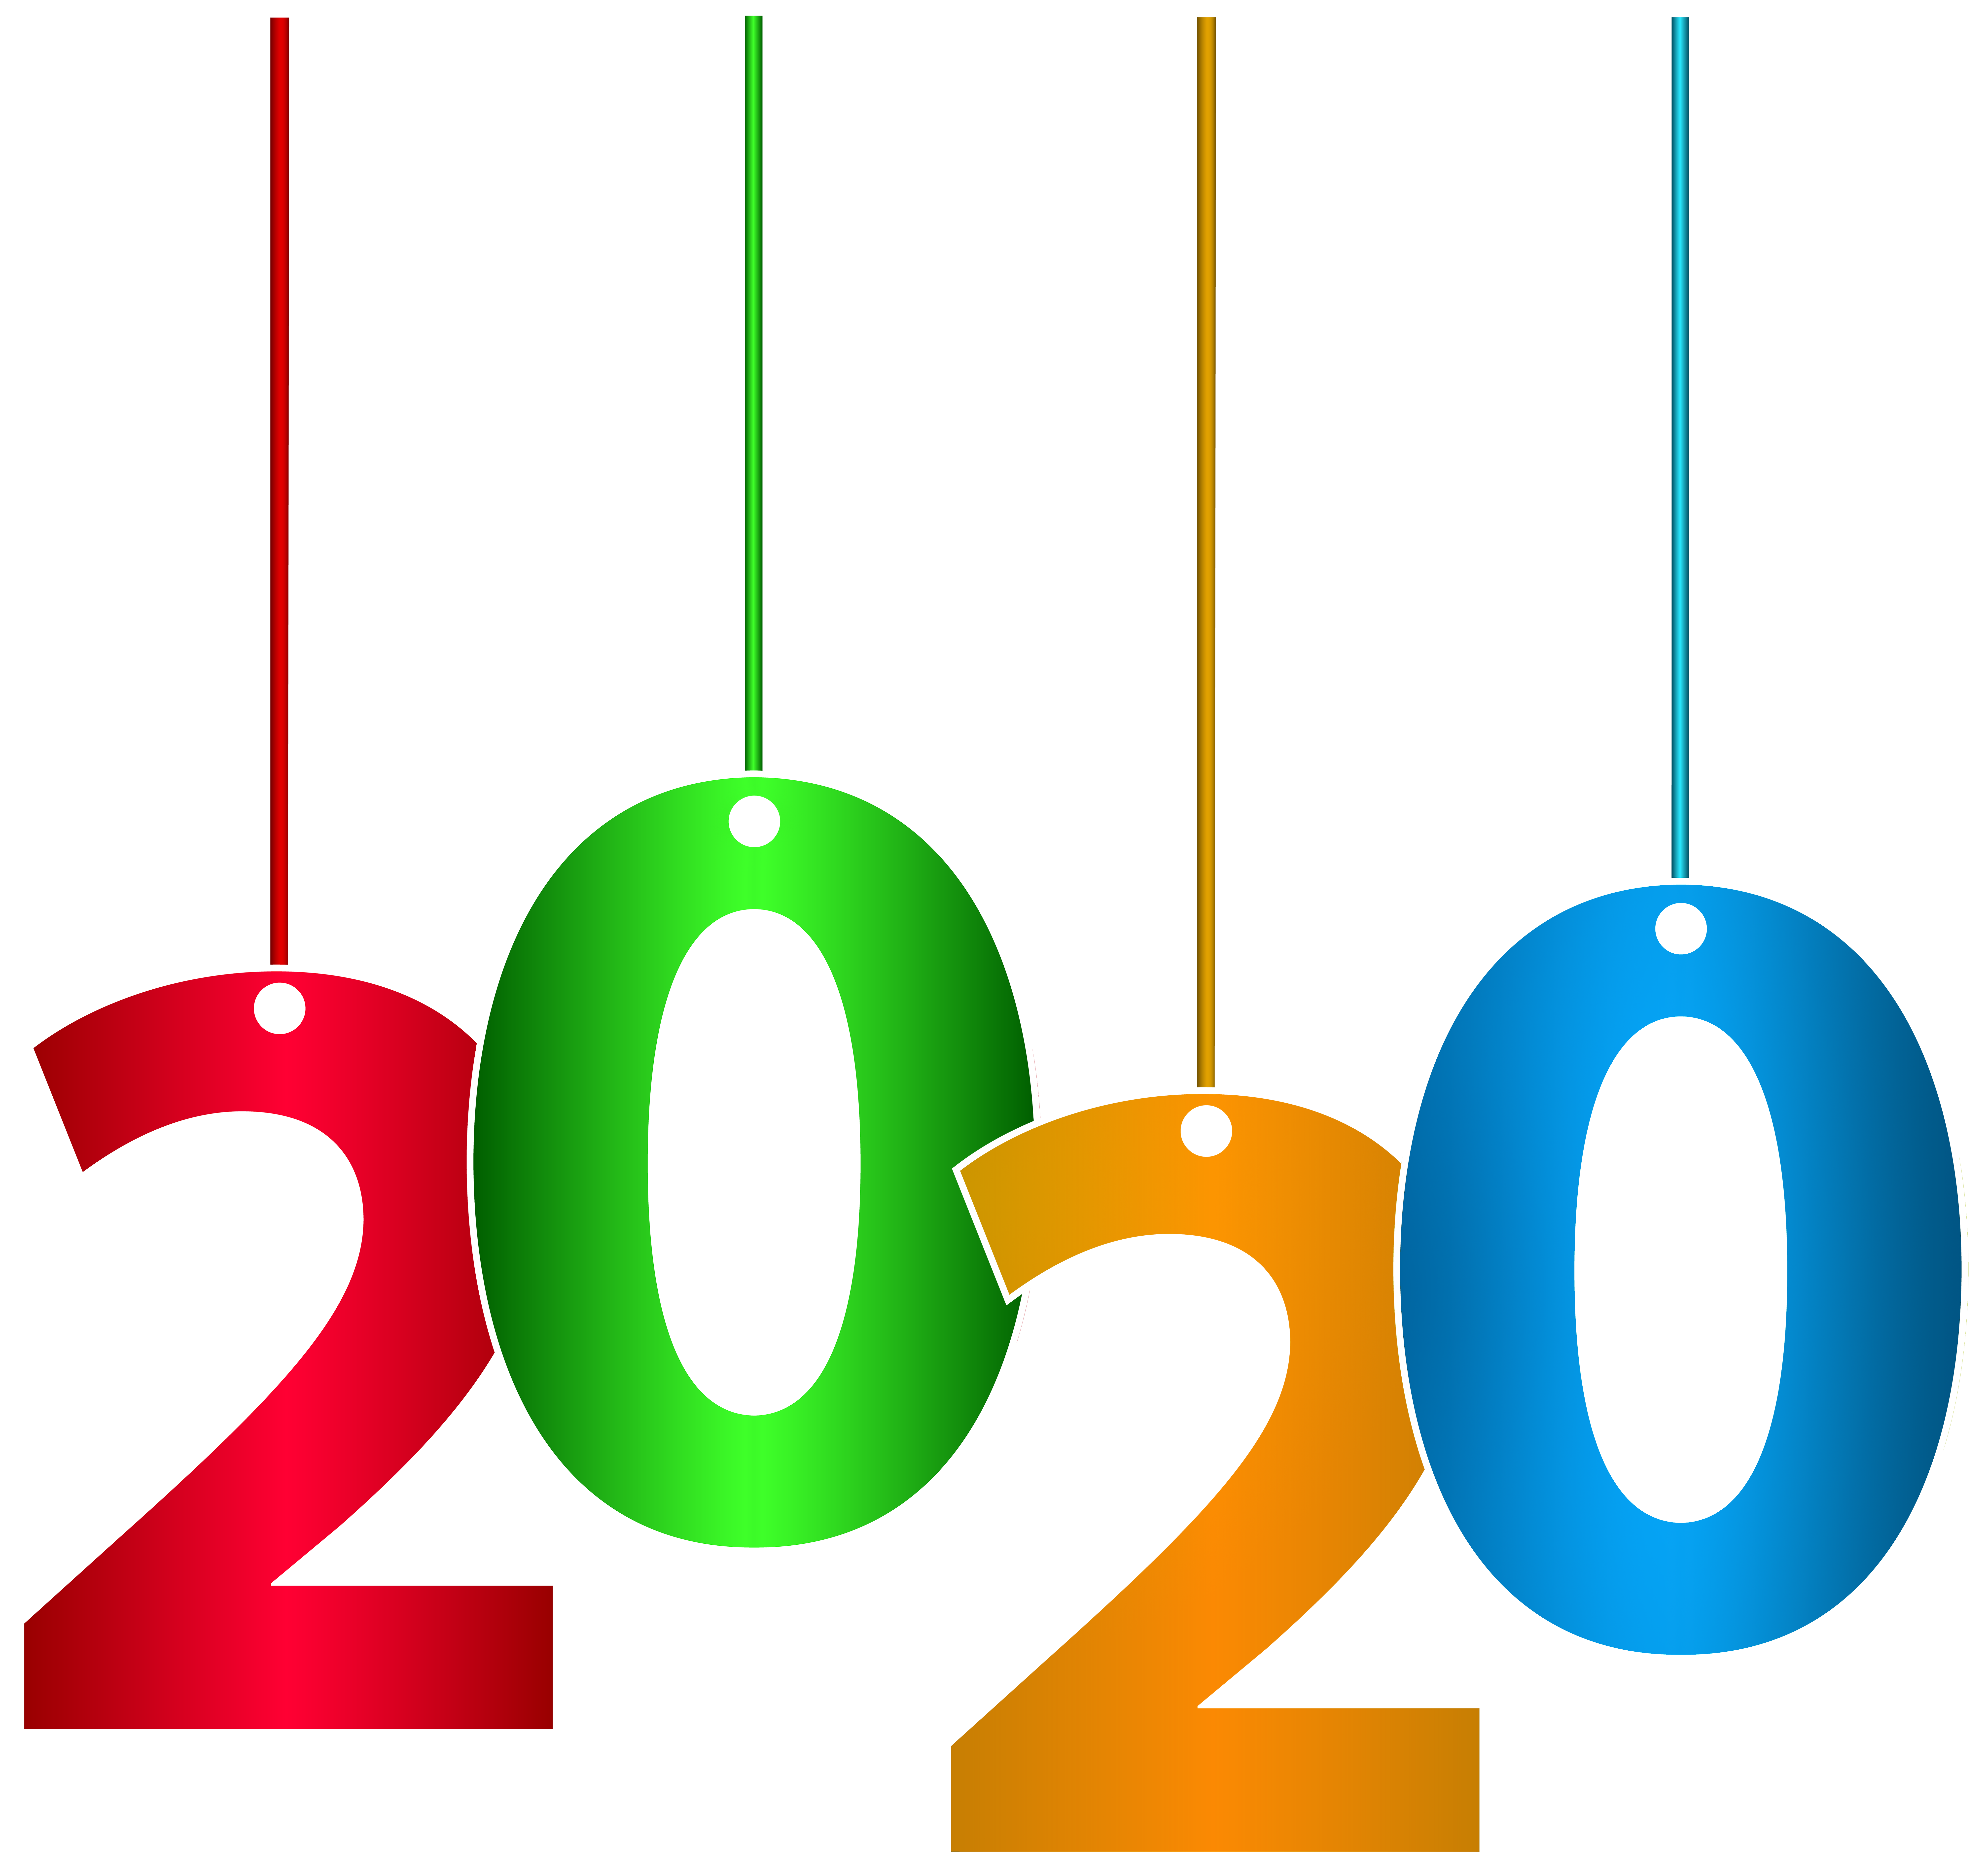 2020 Hanging Transparent Clipart PNG Image.